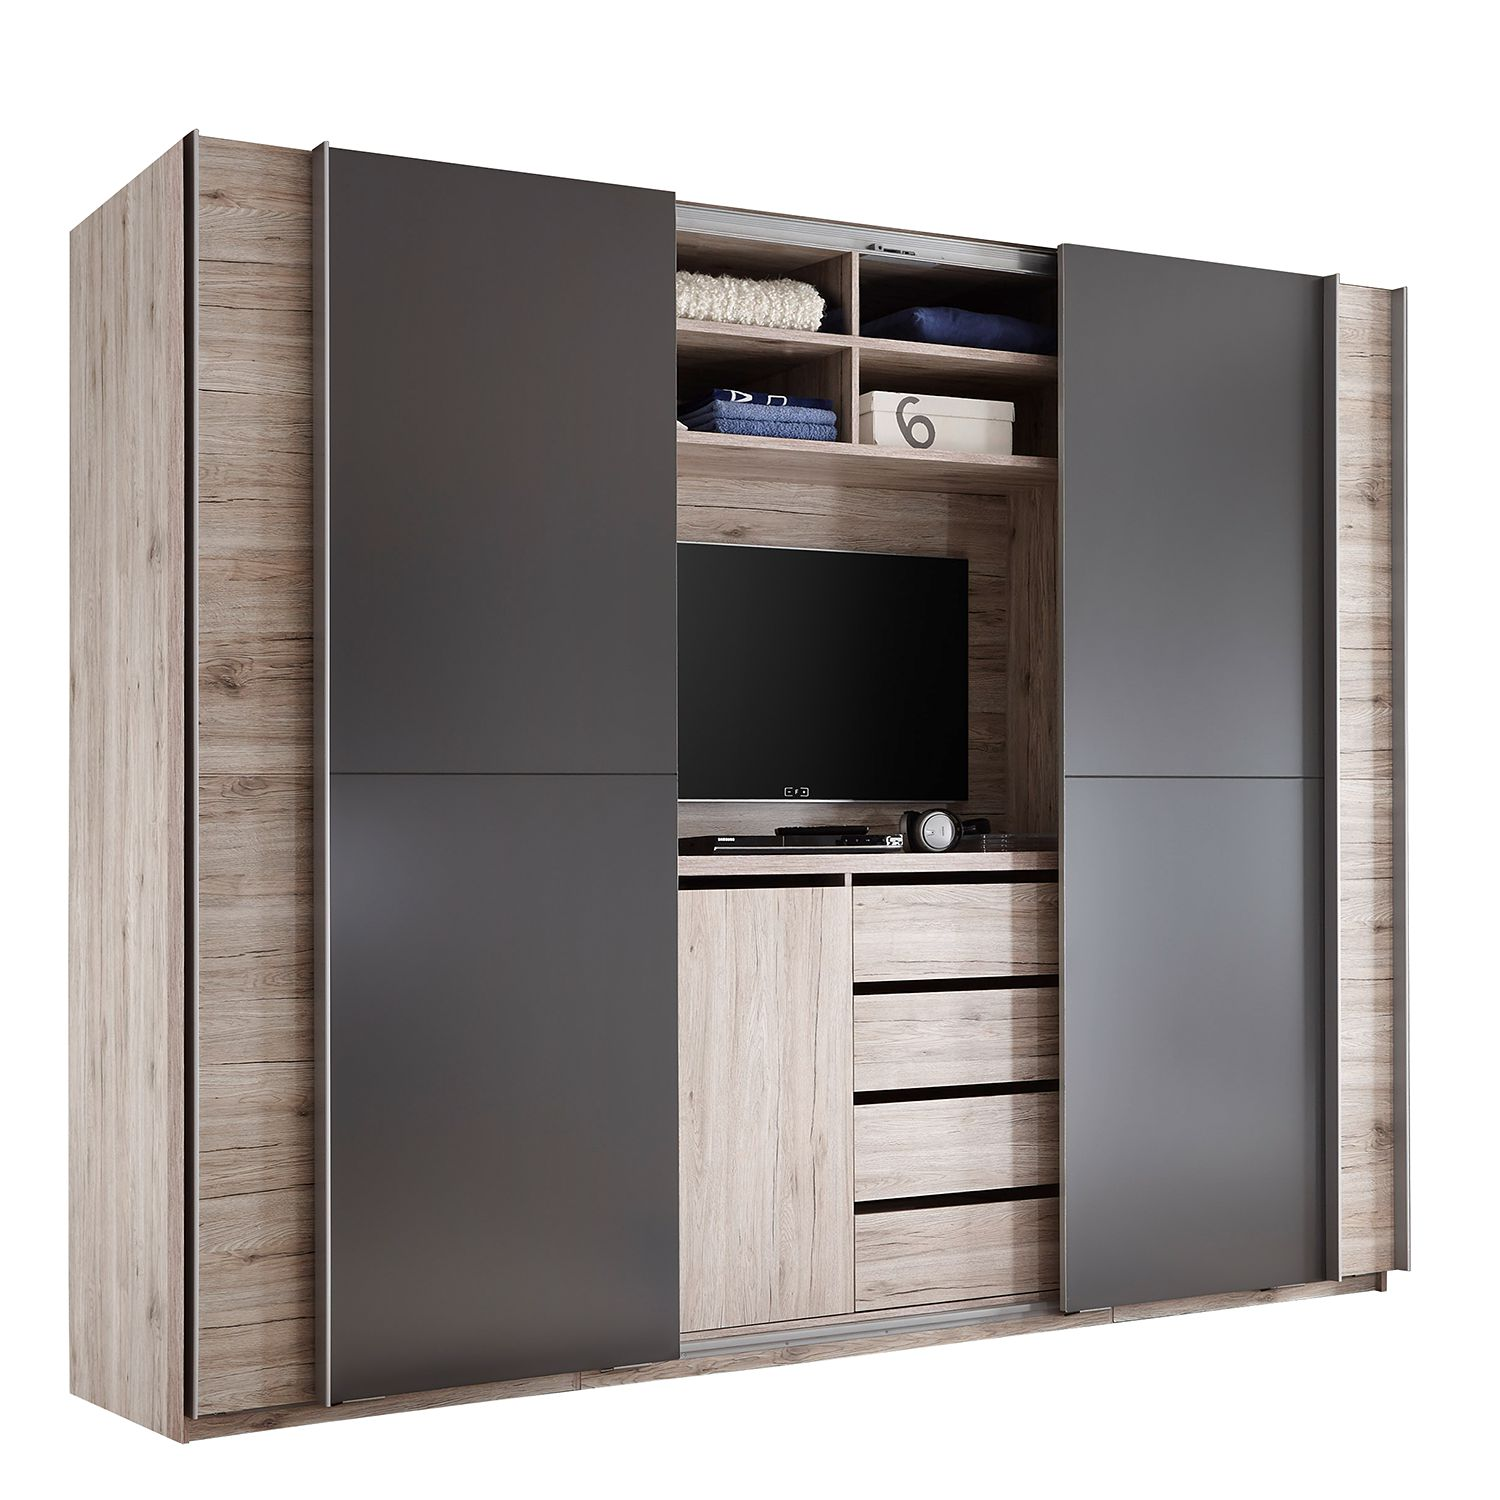 10 sparen schwebet renschrank tilsit nur 899 99 cherry m bel home24. Black Bedroom Furniture Sets. Home Design Ideas